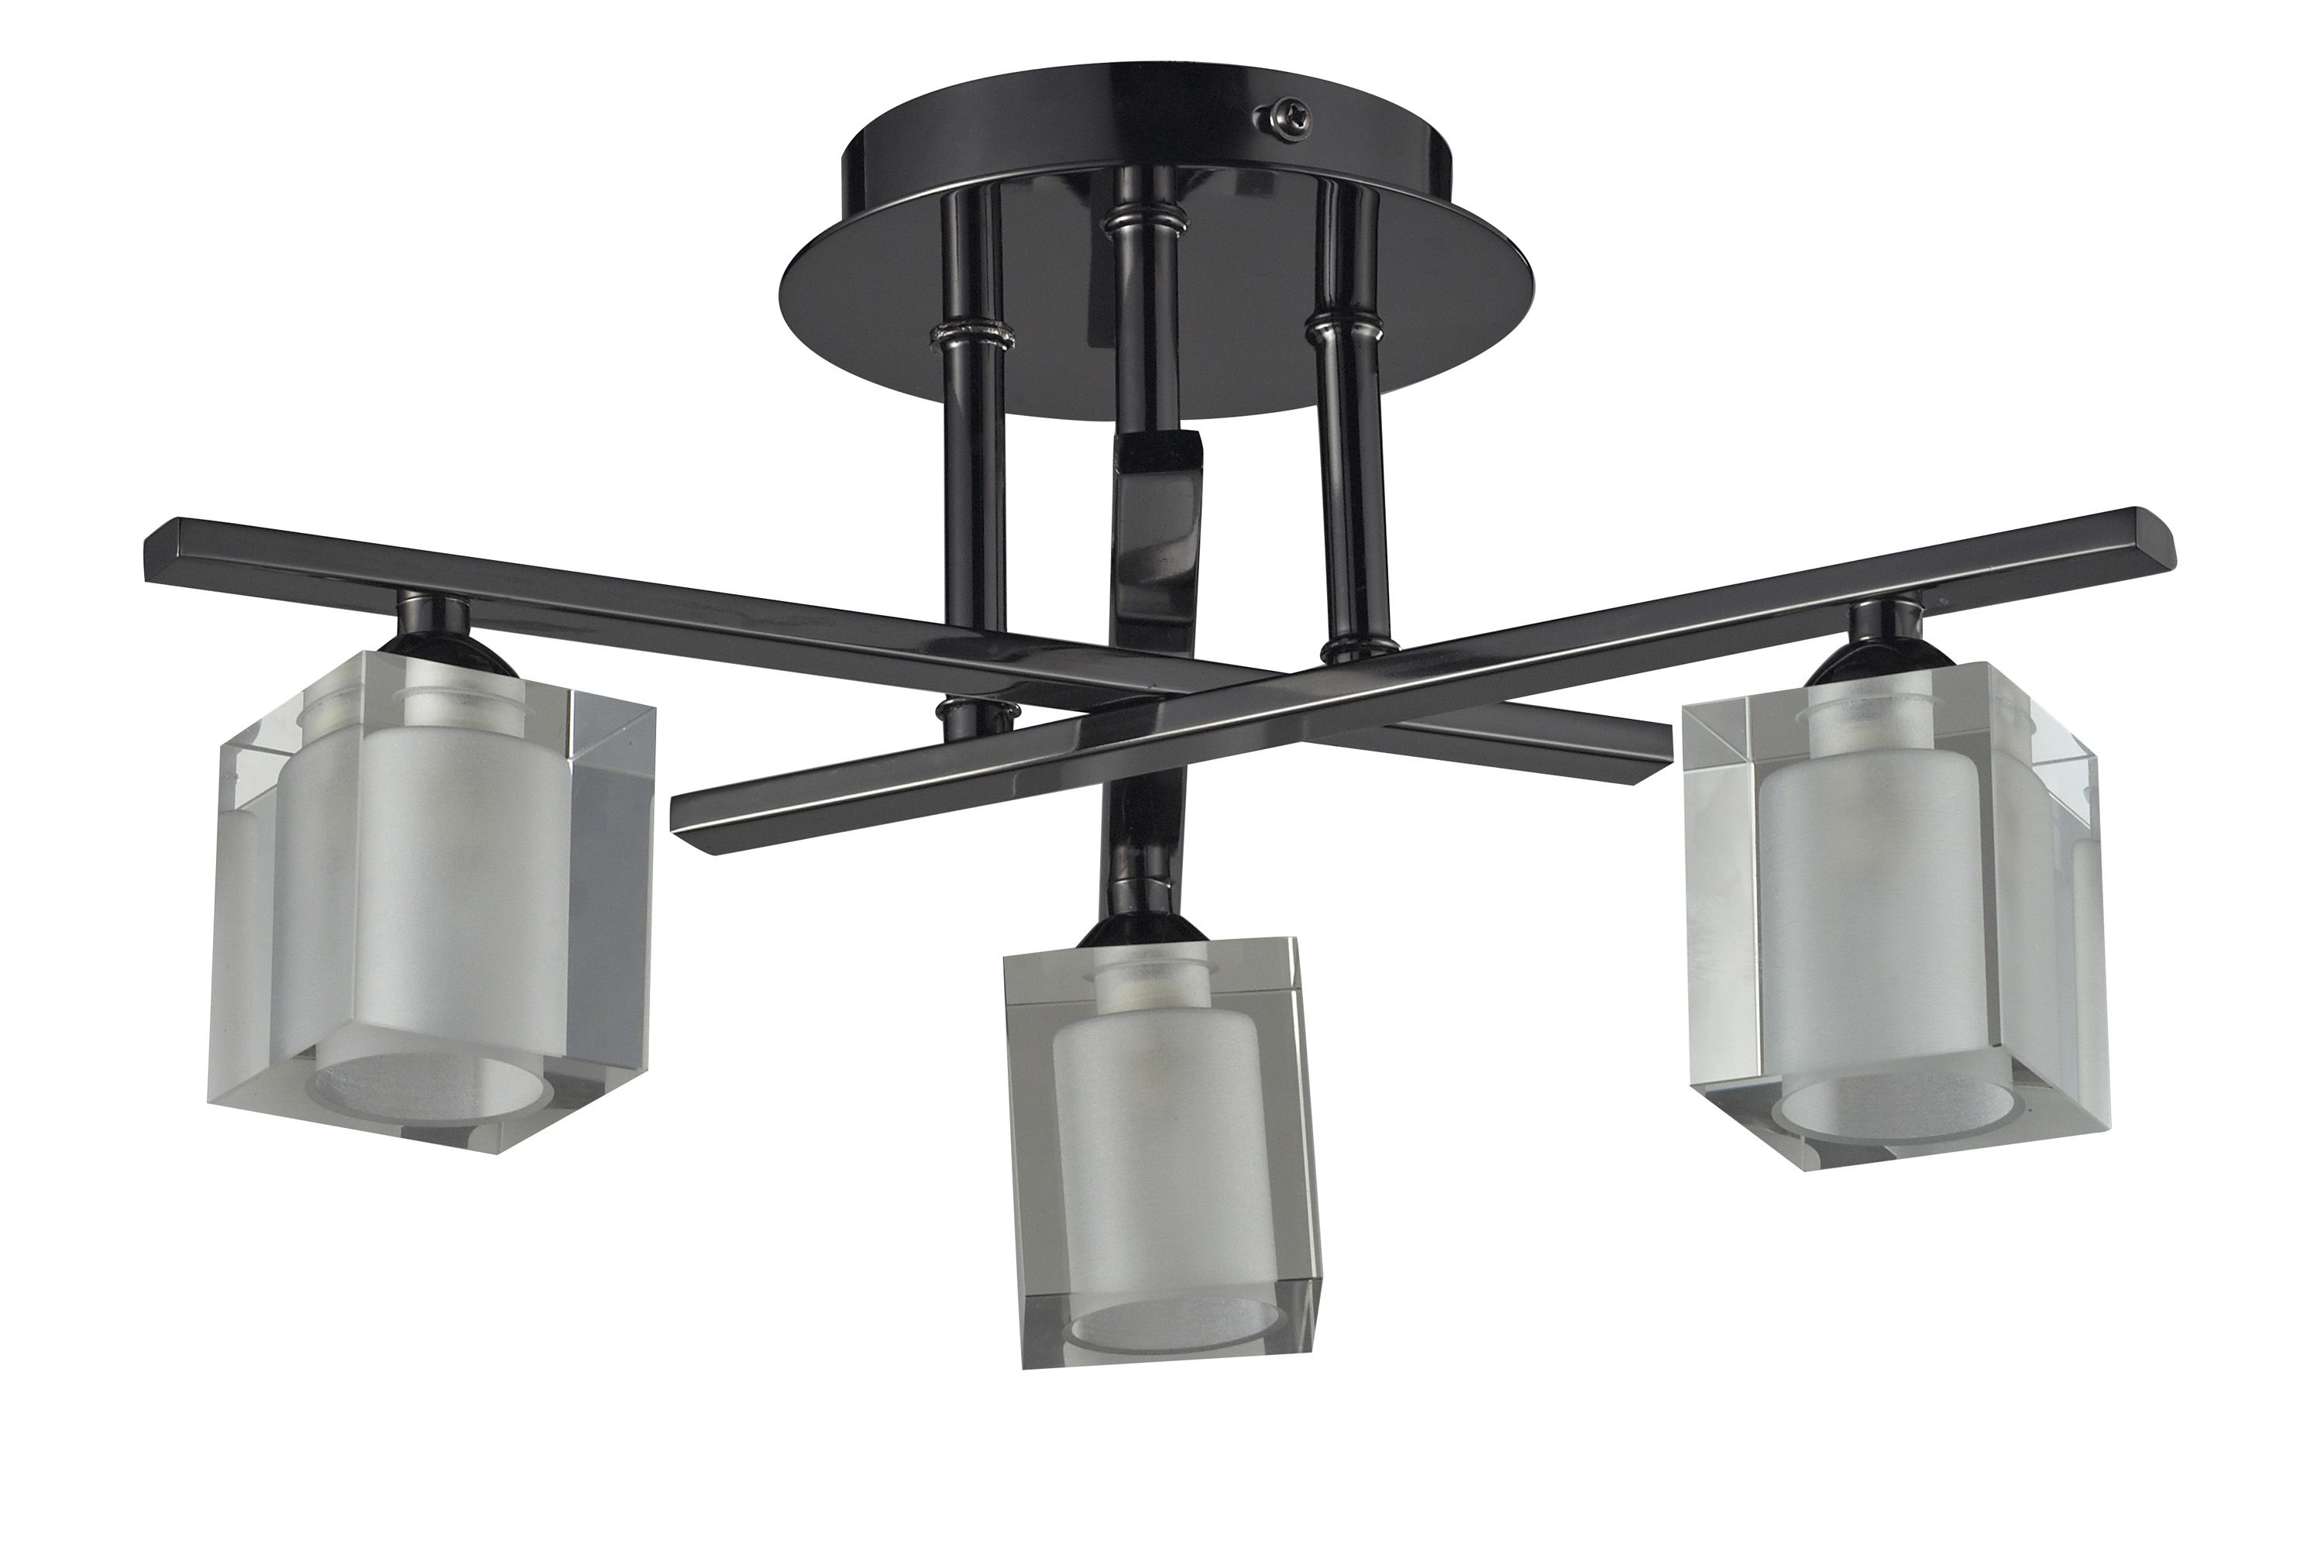 Glass Lamp Ceiling Narran Cubic Black Nickel Effect 3 Lamp Ceiling Light Departments Diy At B Q